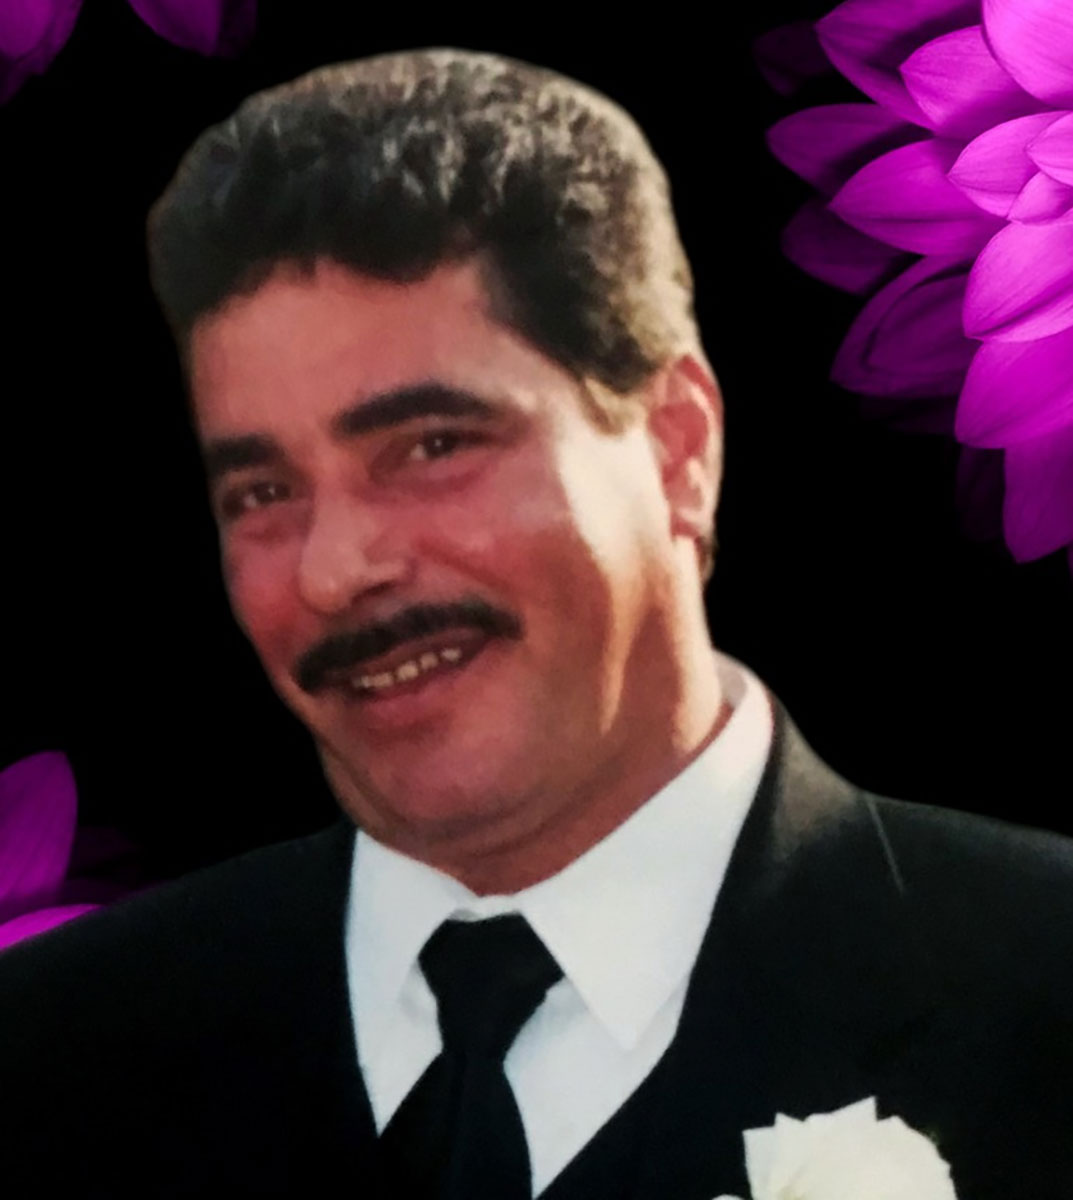 Long Island Pizzeria Owner, 56, Died in the Dominican Republic 'After Drinking Something'